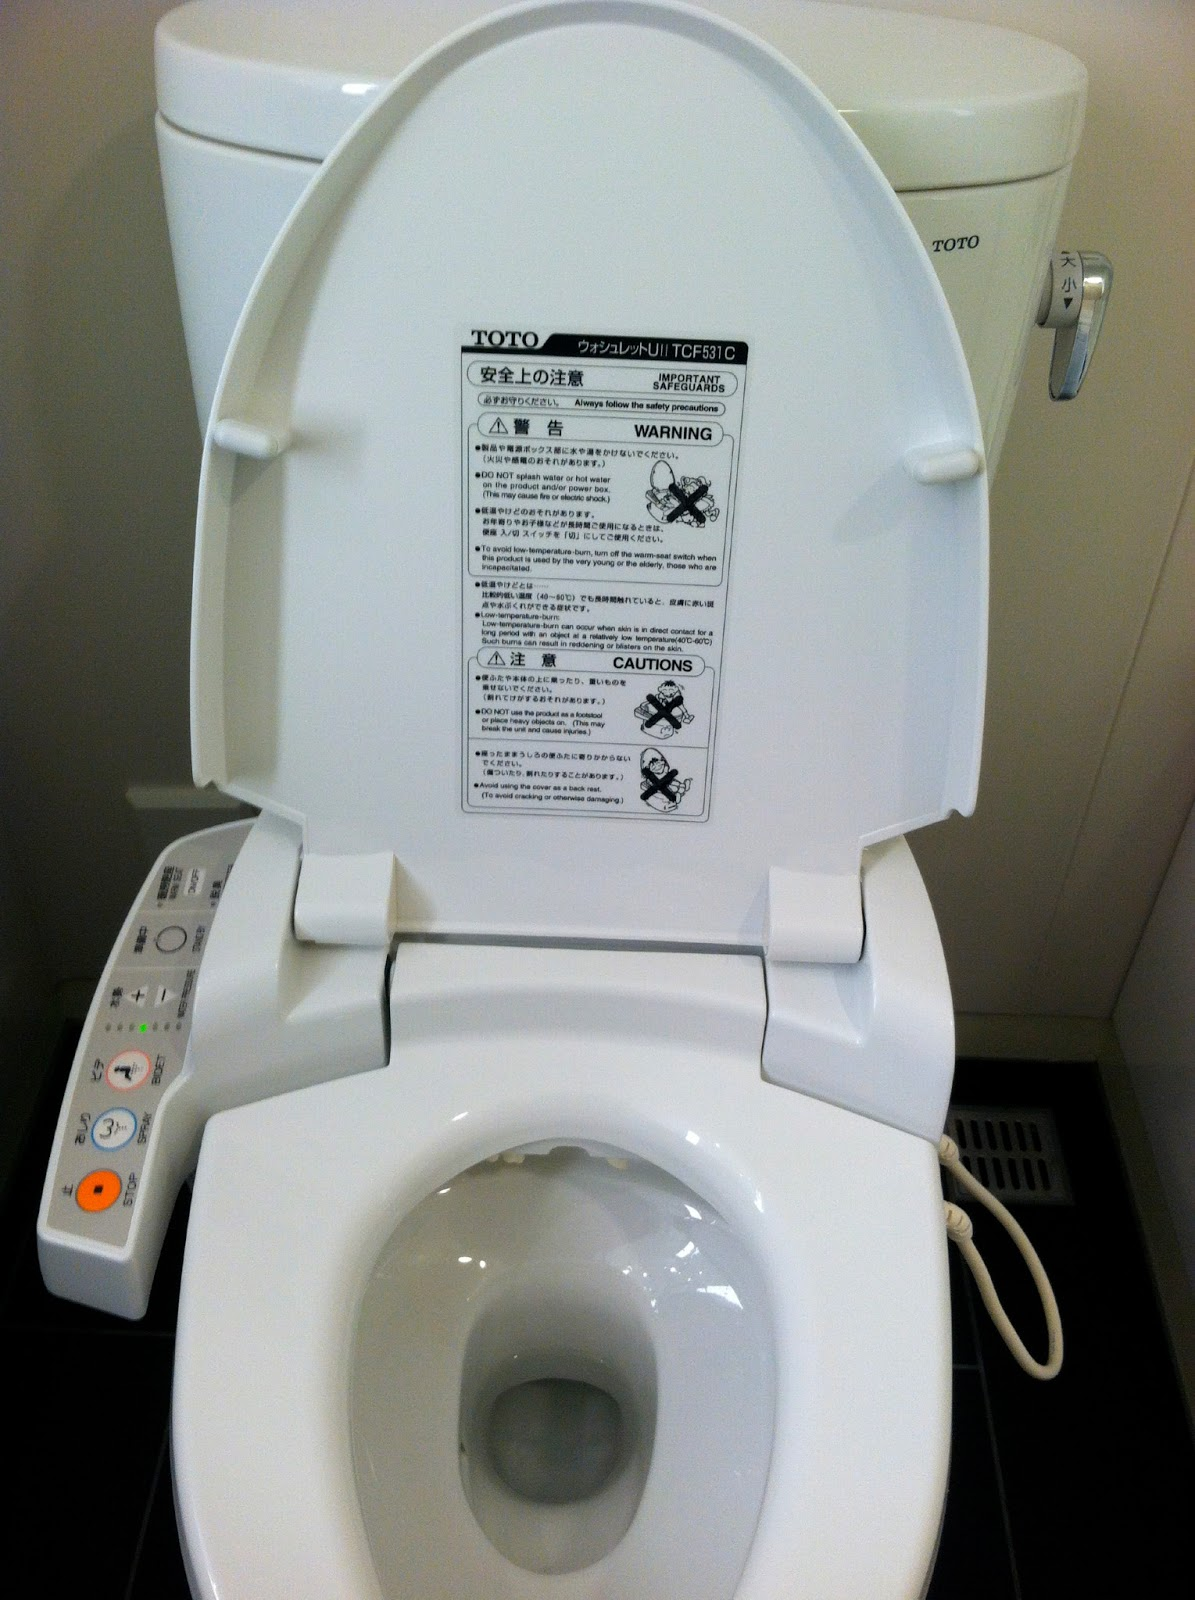 rubin on wry: Japan\'s toilet technology bows to no nation